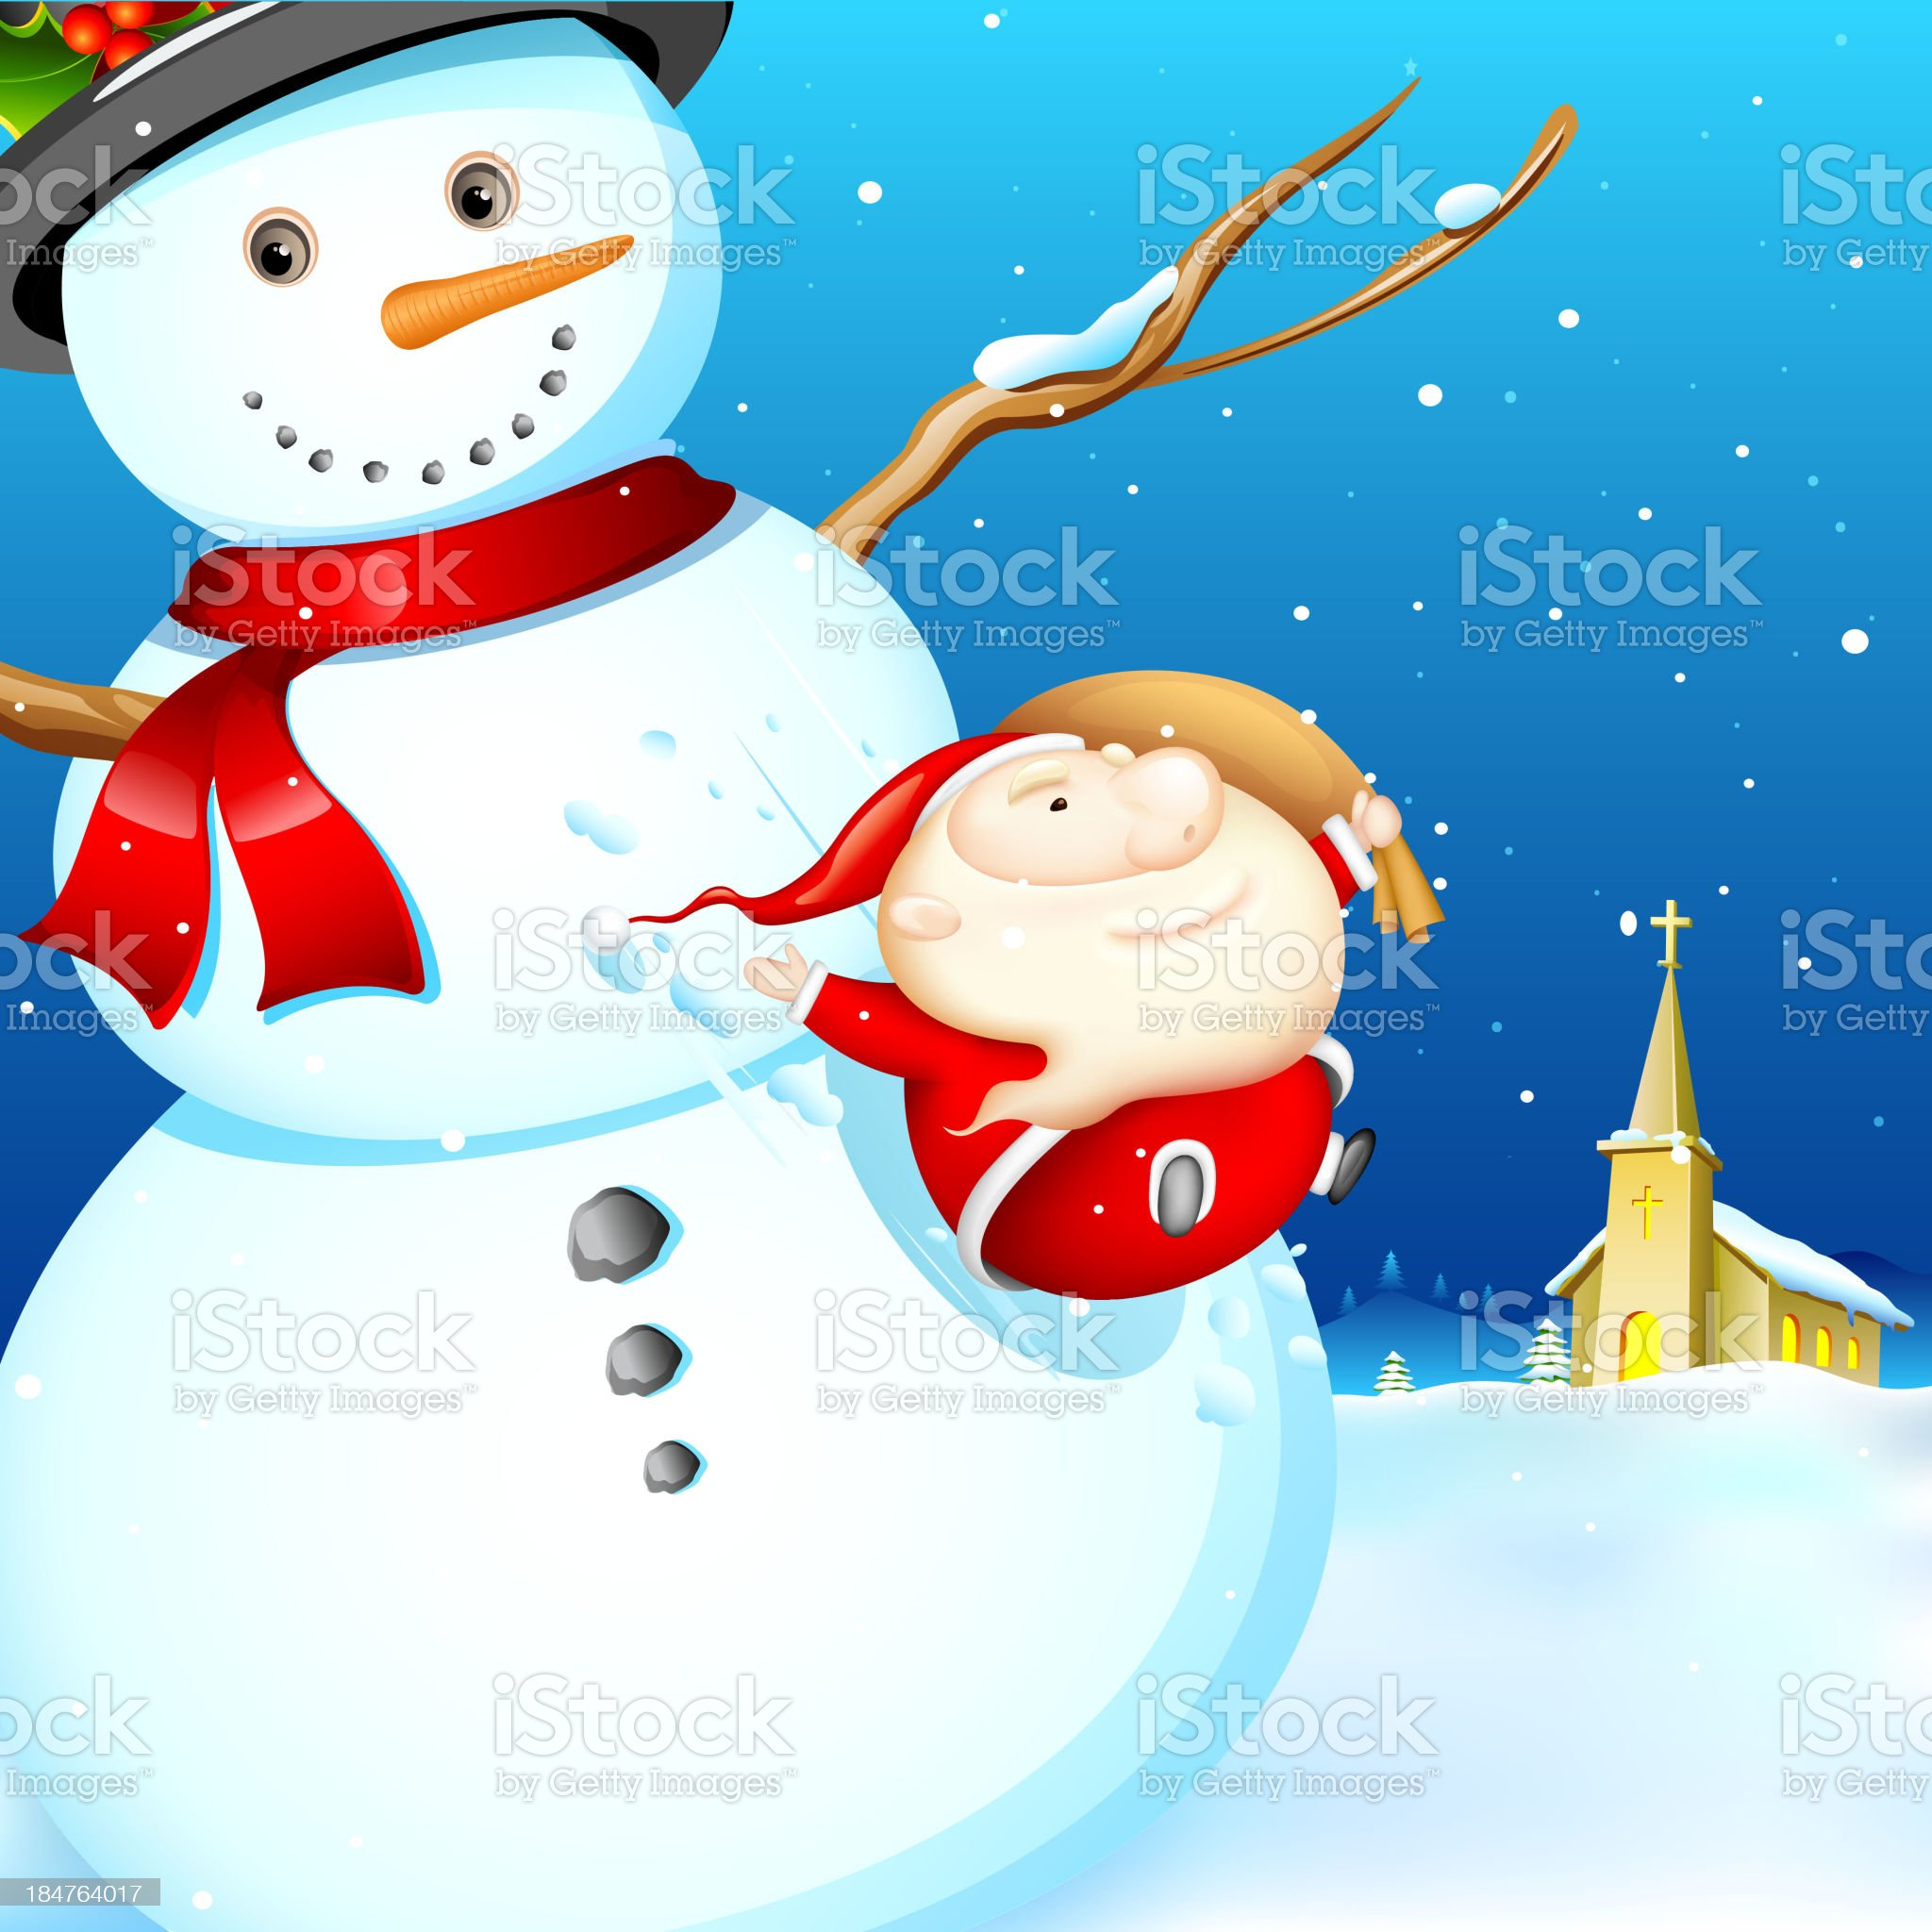 Sliding Santa royalty-free stock vector art